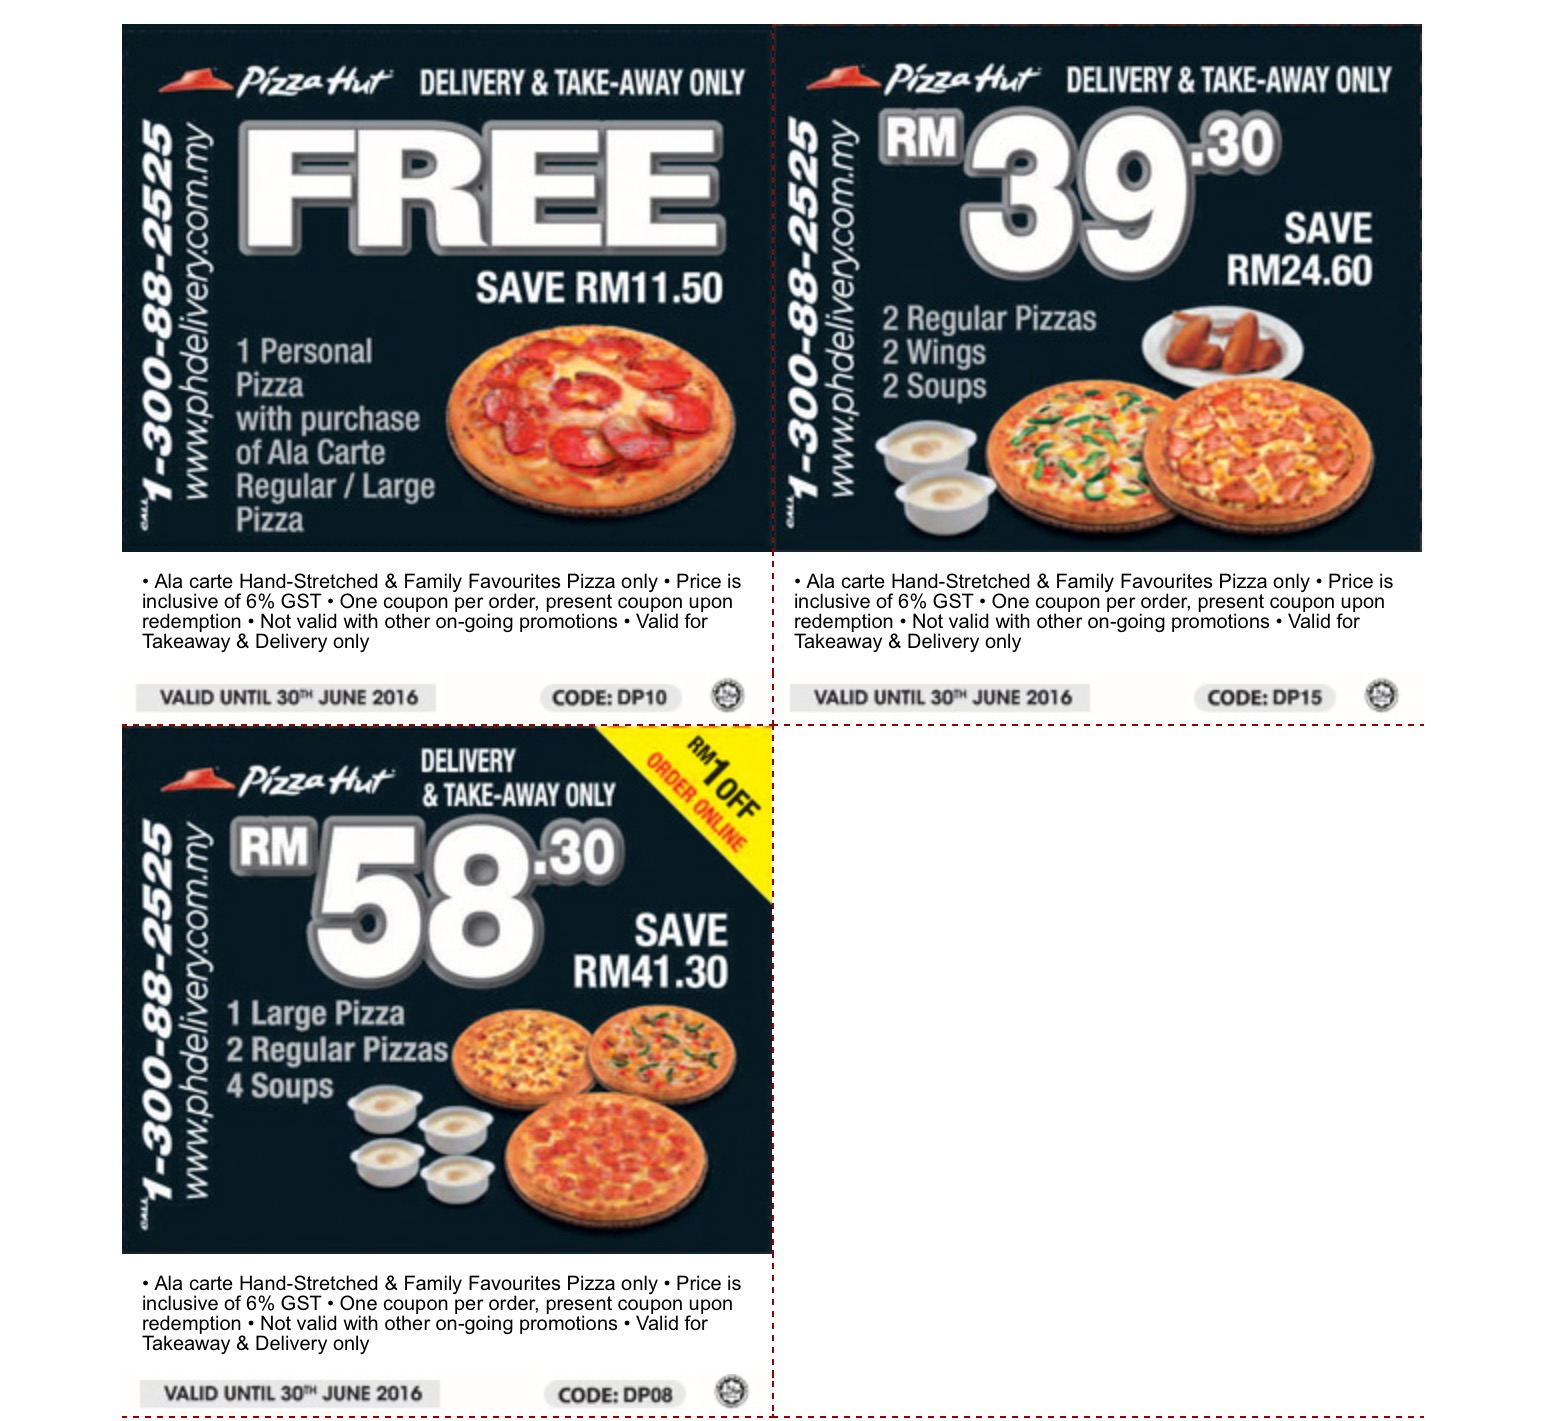 Use this Pizza Hut coupon code to get free breadsticks when you order a medium or large pizza at r0nd.tk This coupon will not stack with other promo codes. This promotion for free breadsticks is for a limited time only.